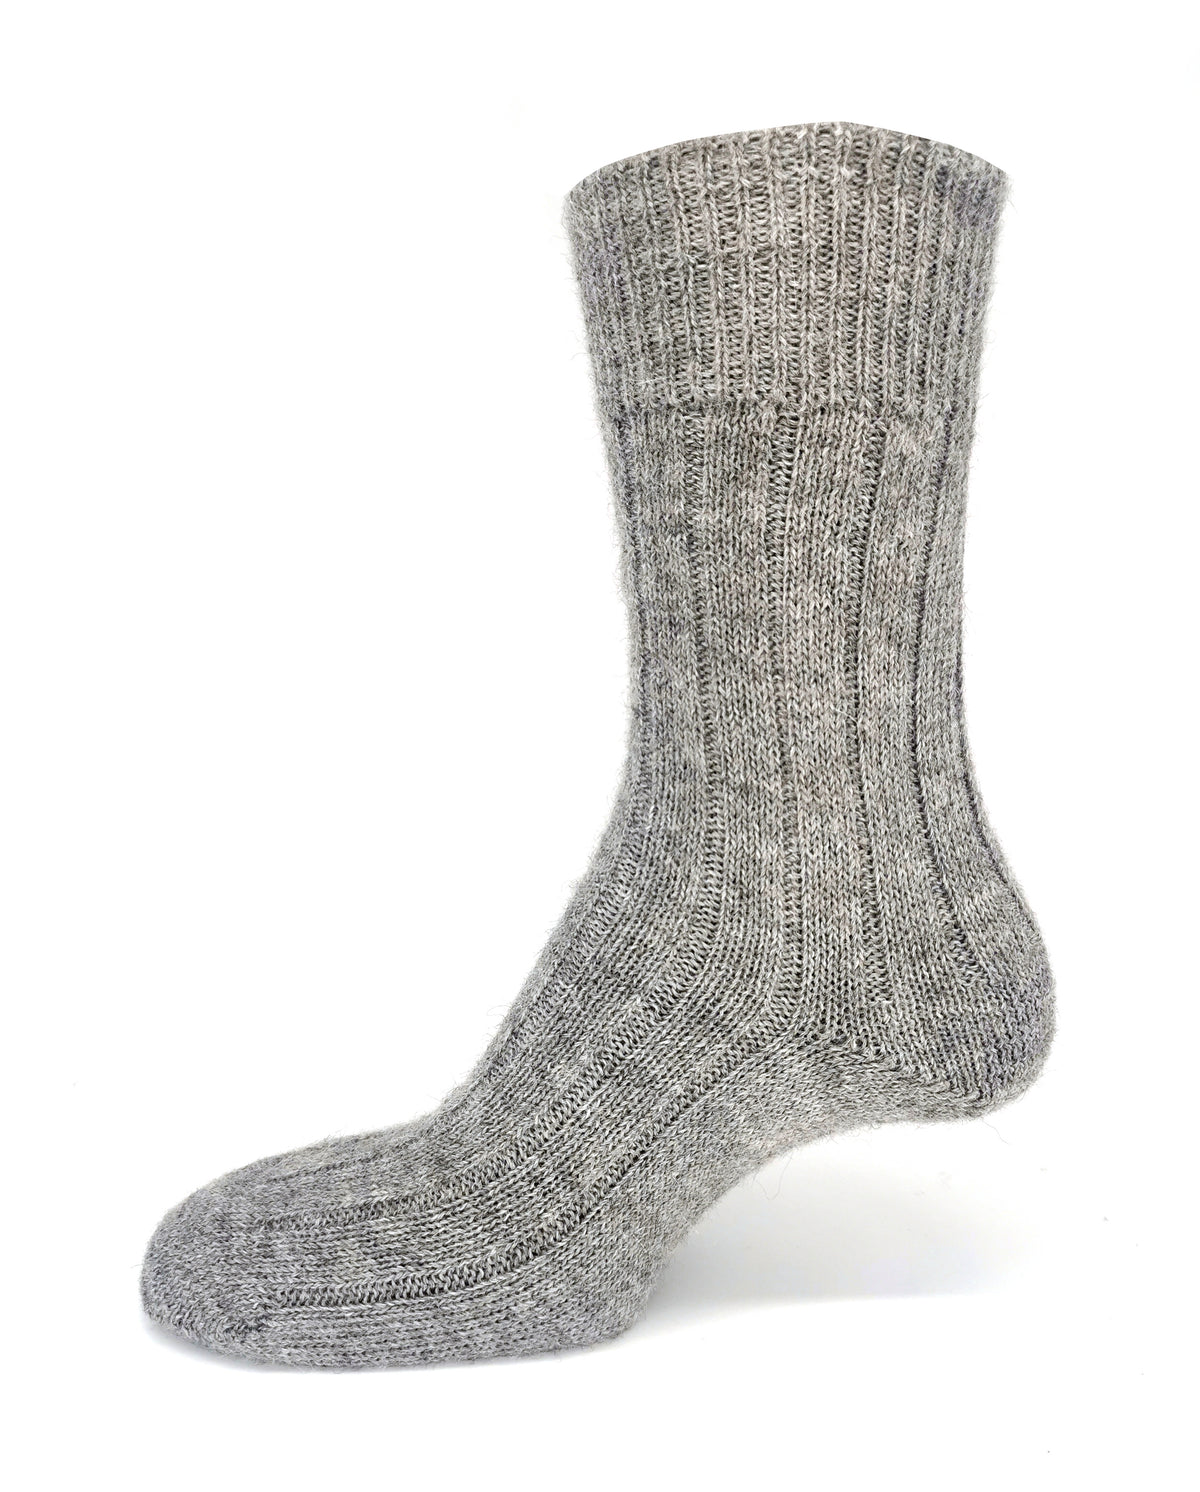 Alpaca Socks Grey - Community Clothing